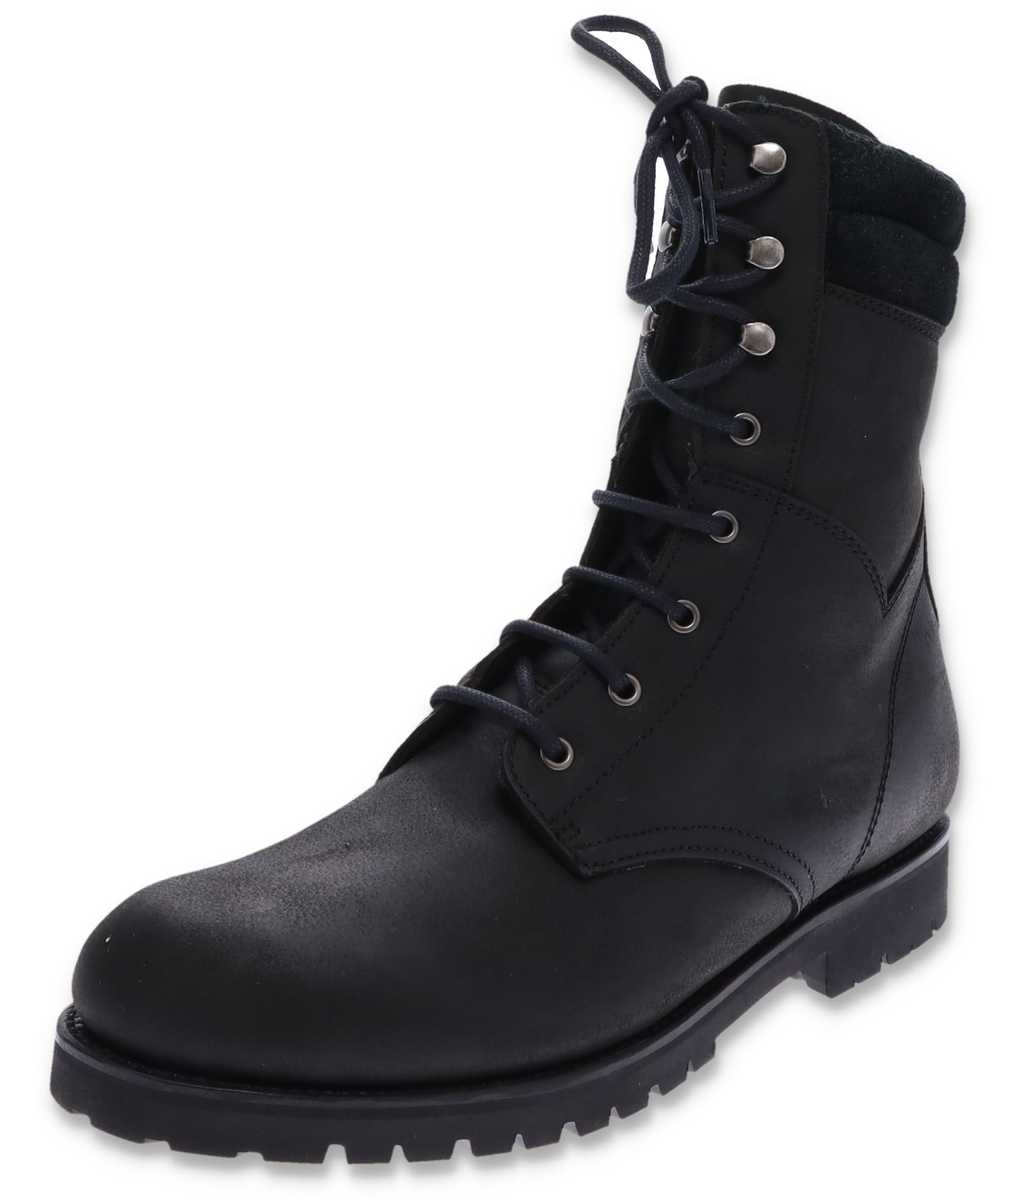 FB Fashion Boots MONTANA Negro biker boots with Thinsulate - black